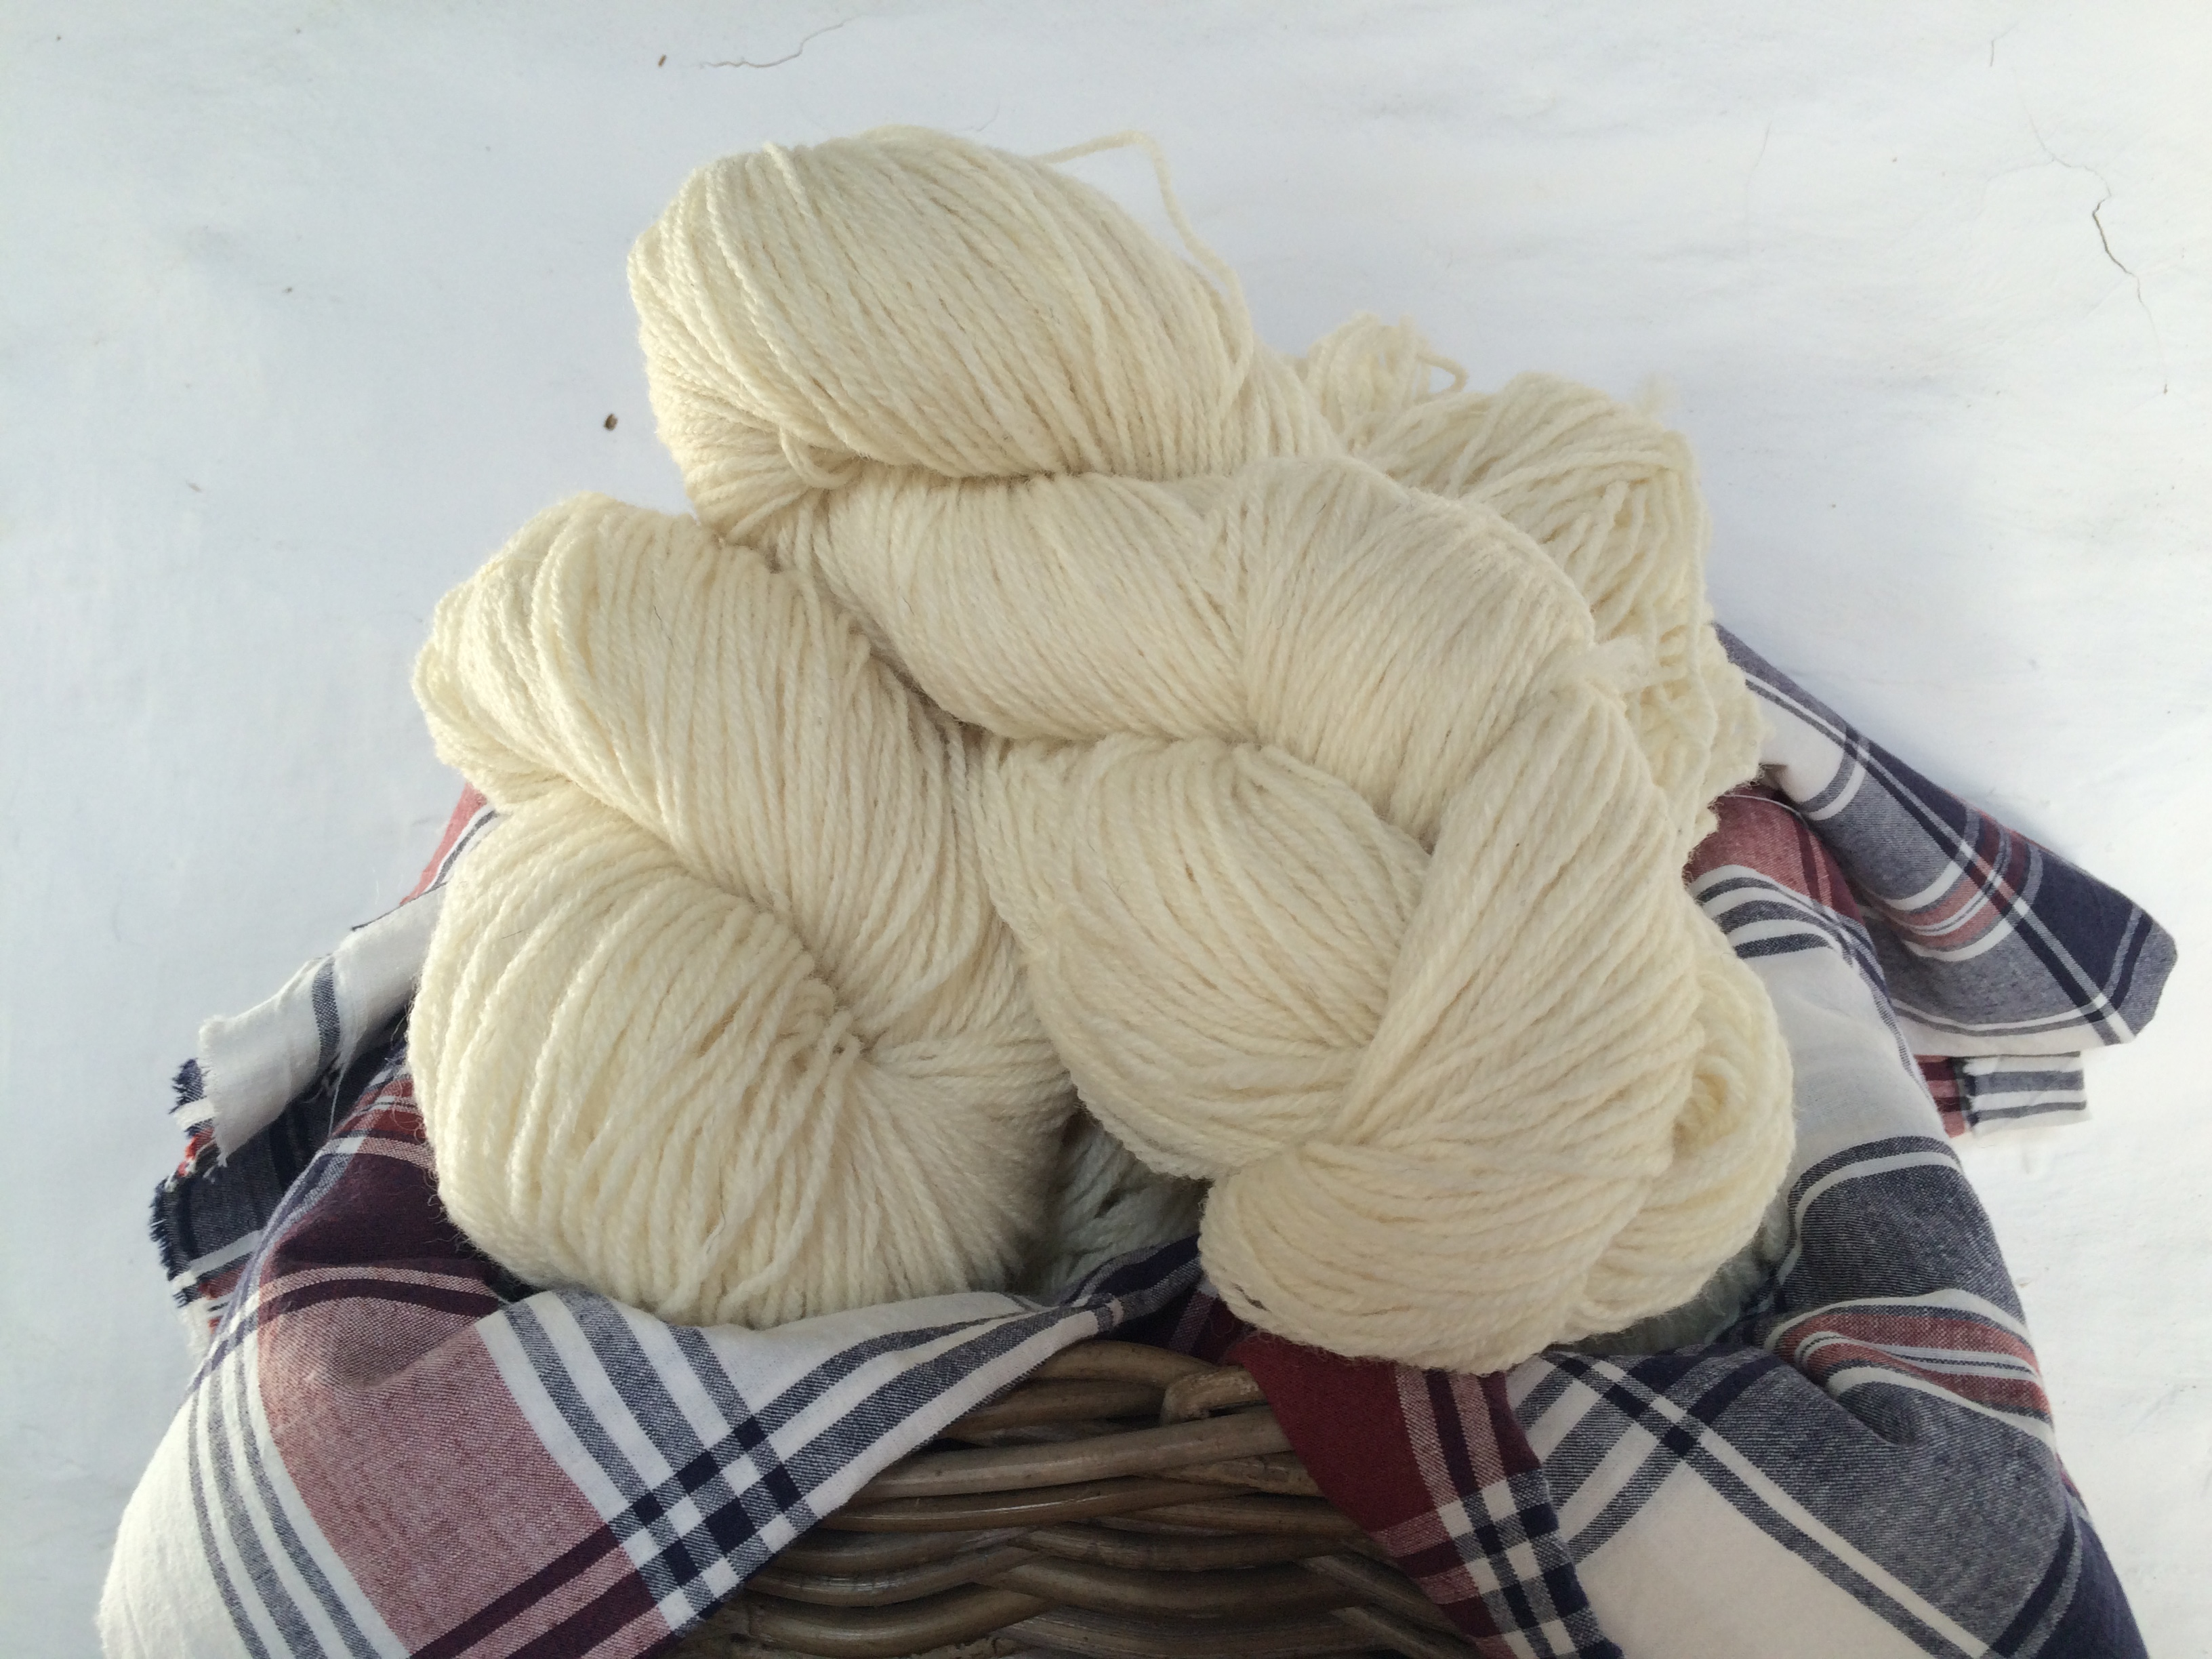 Llanwenog knitting yarn, double knit  - CD Available to buy now